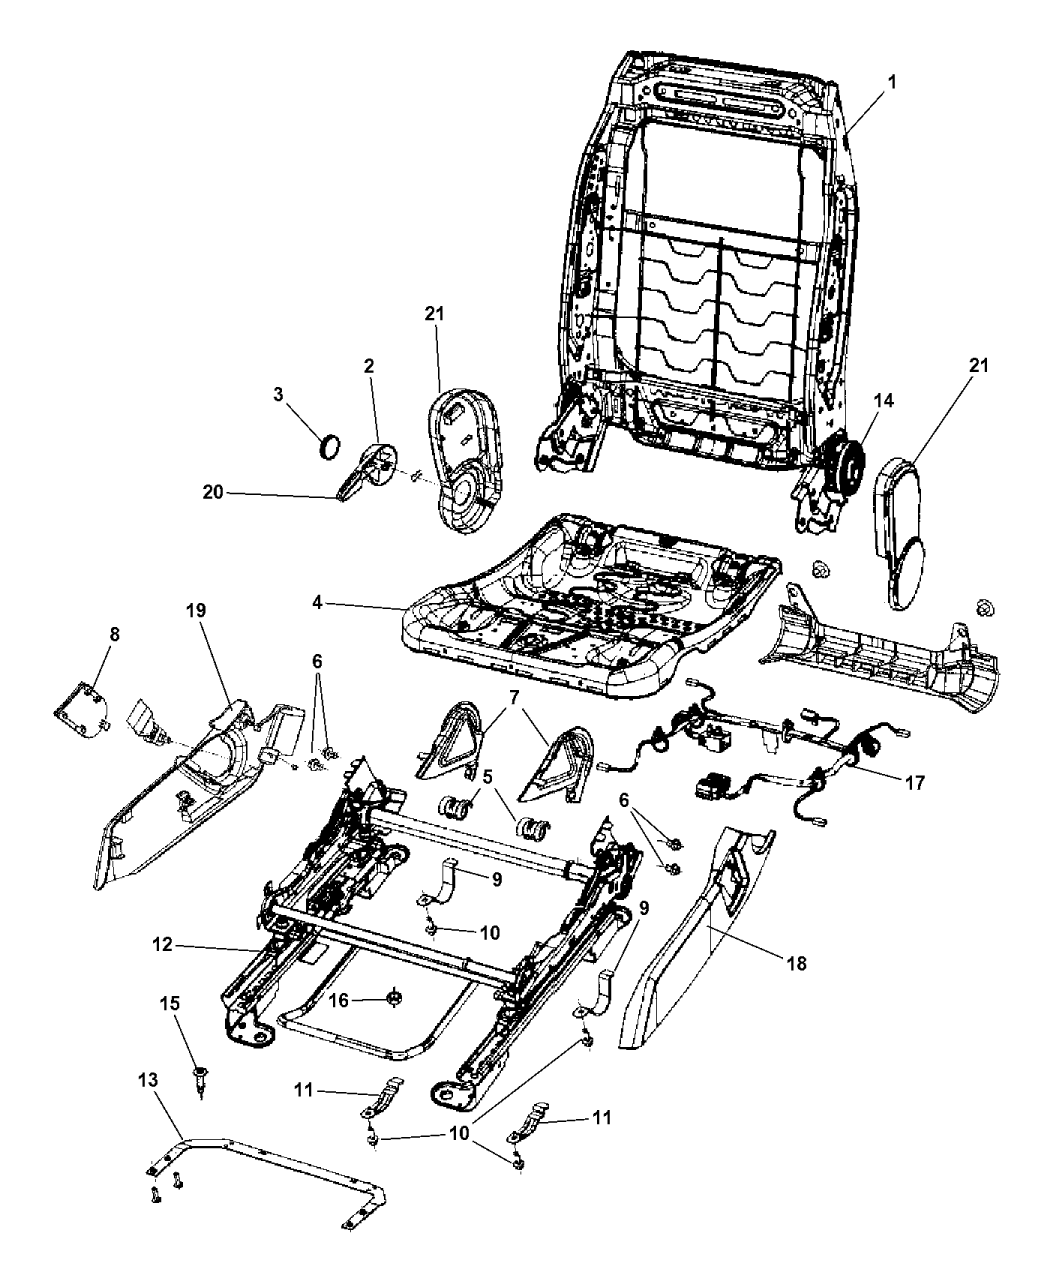 jeep patriot interior parts diagram  u2022 wiring diagram for free